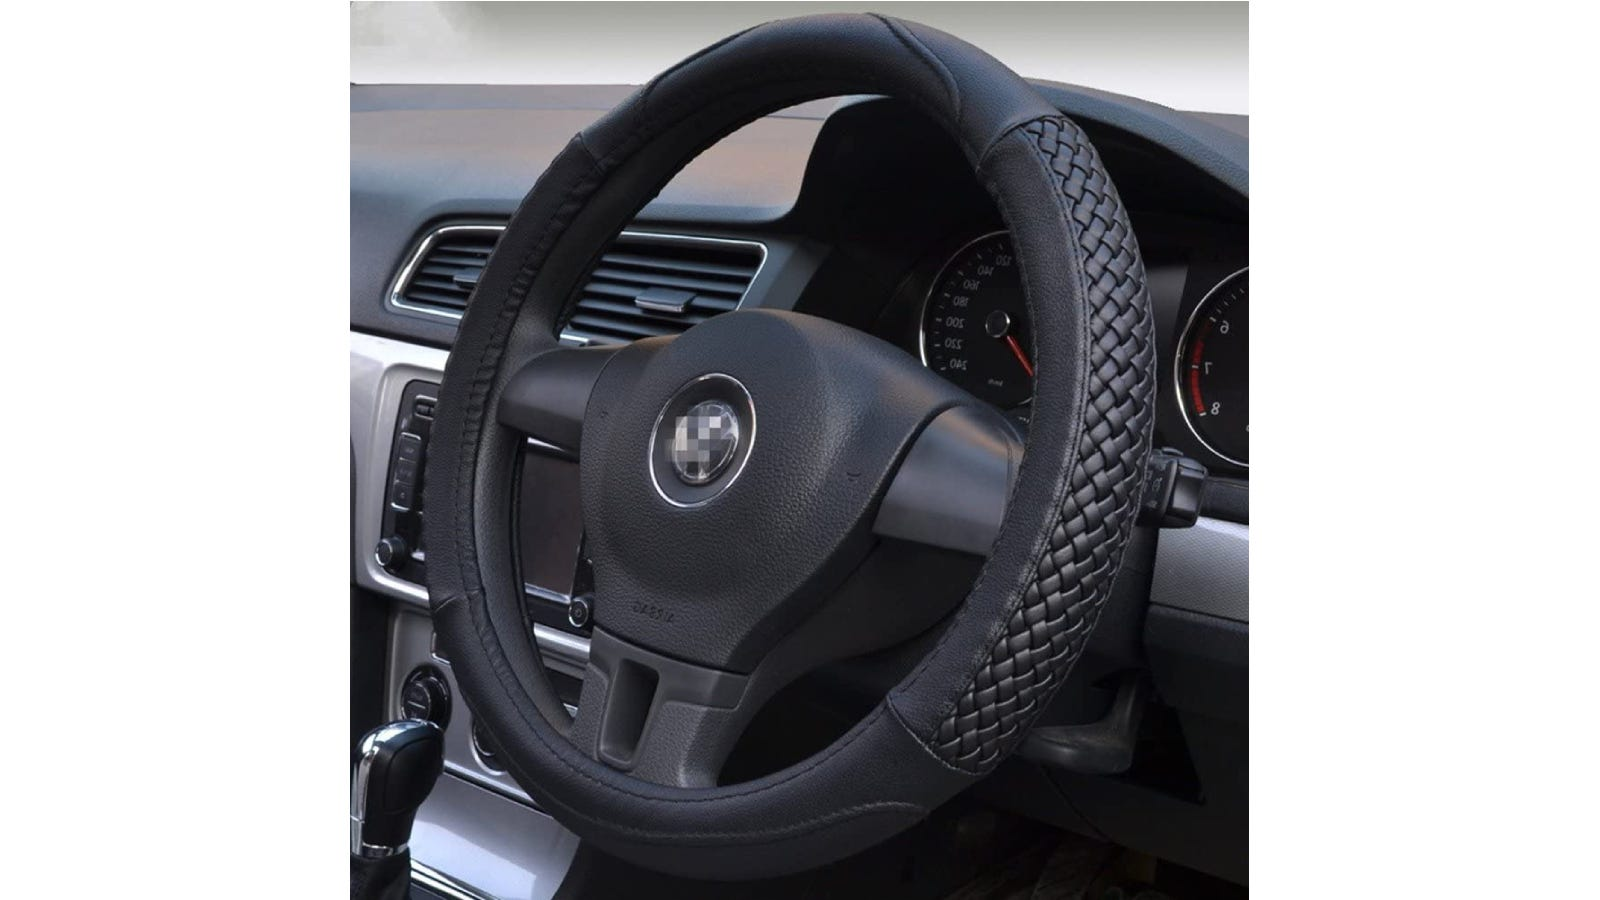 A steering wheel with a black cover that has a woven pattern on two sides.